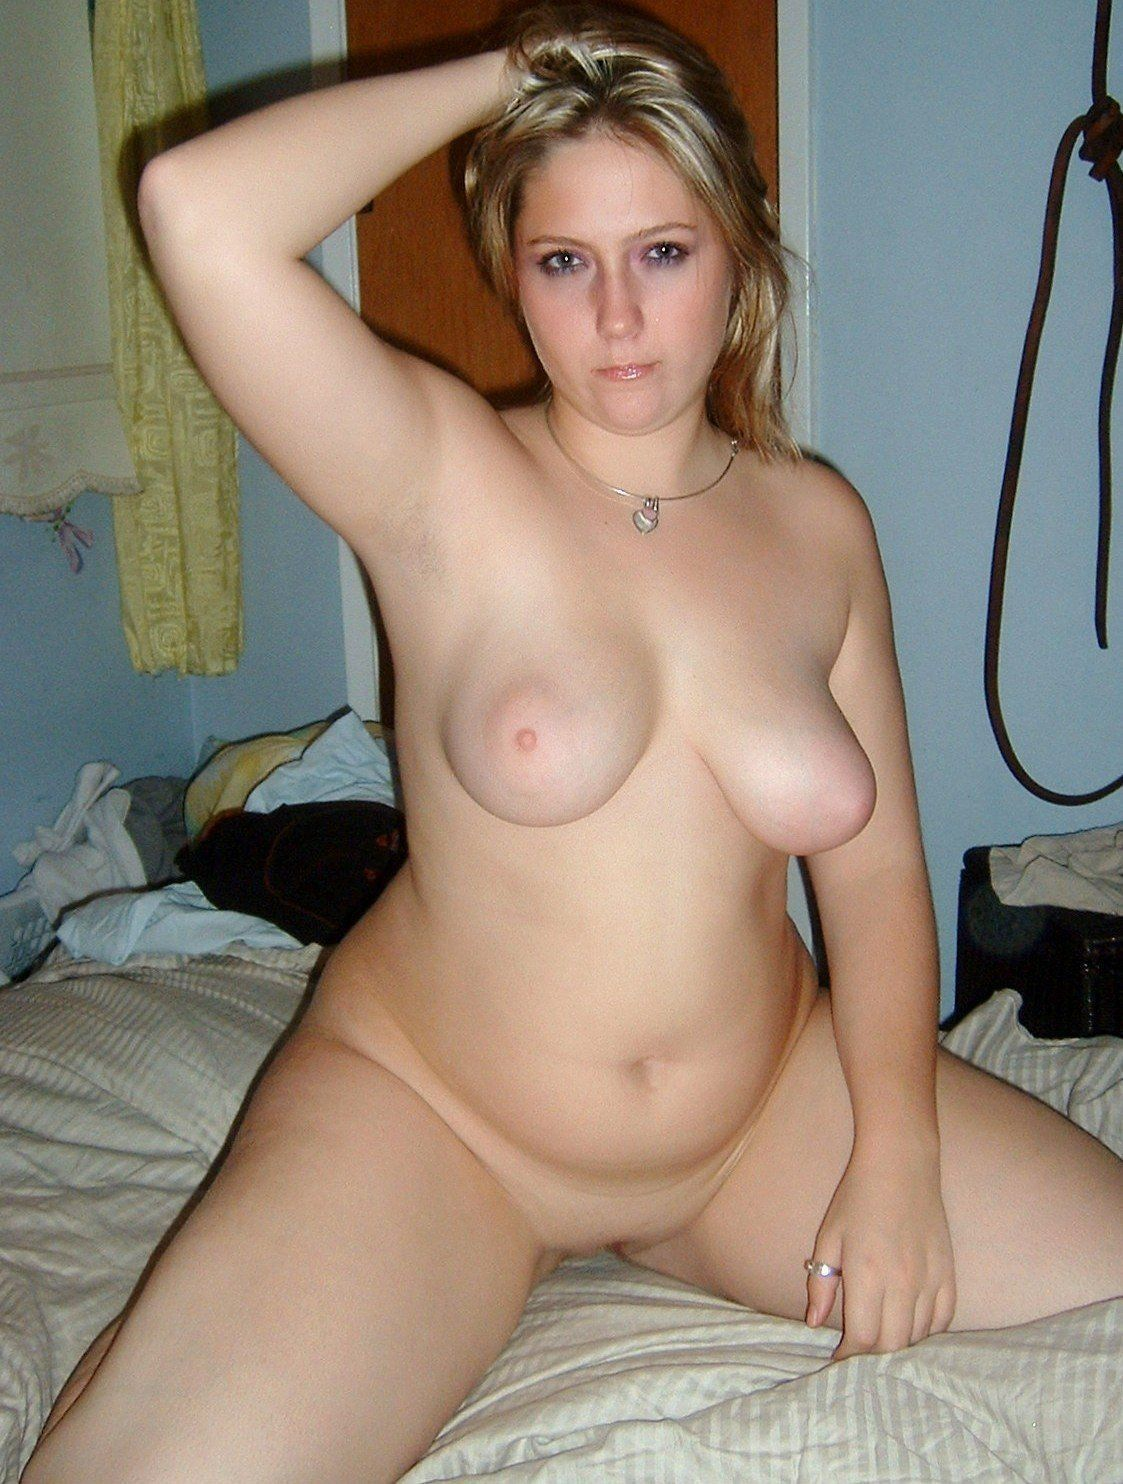 Sorry, that free nude chubby pix seems excellent